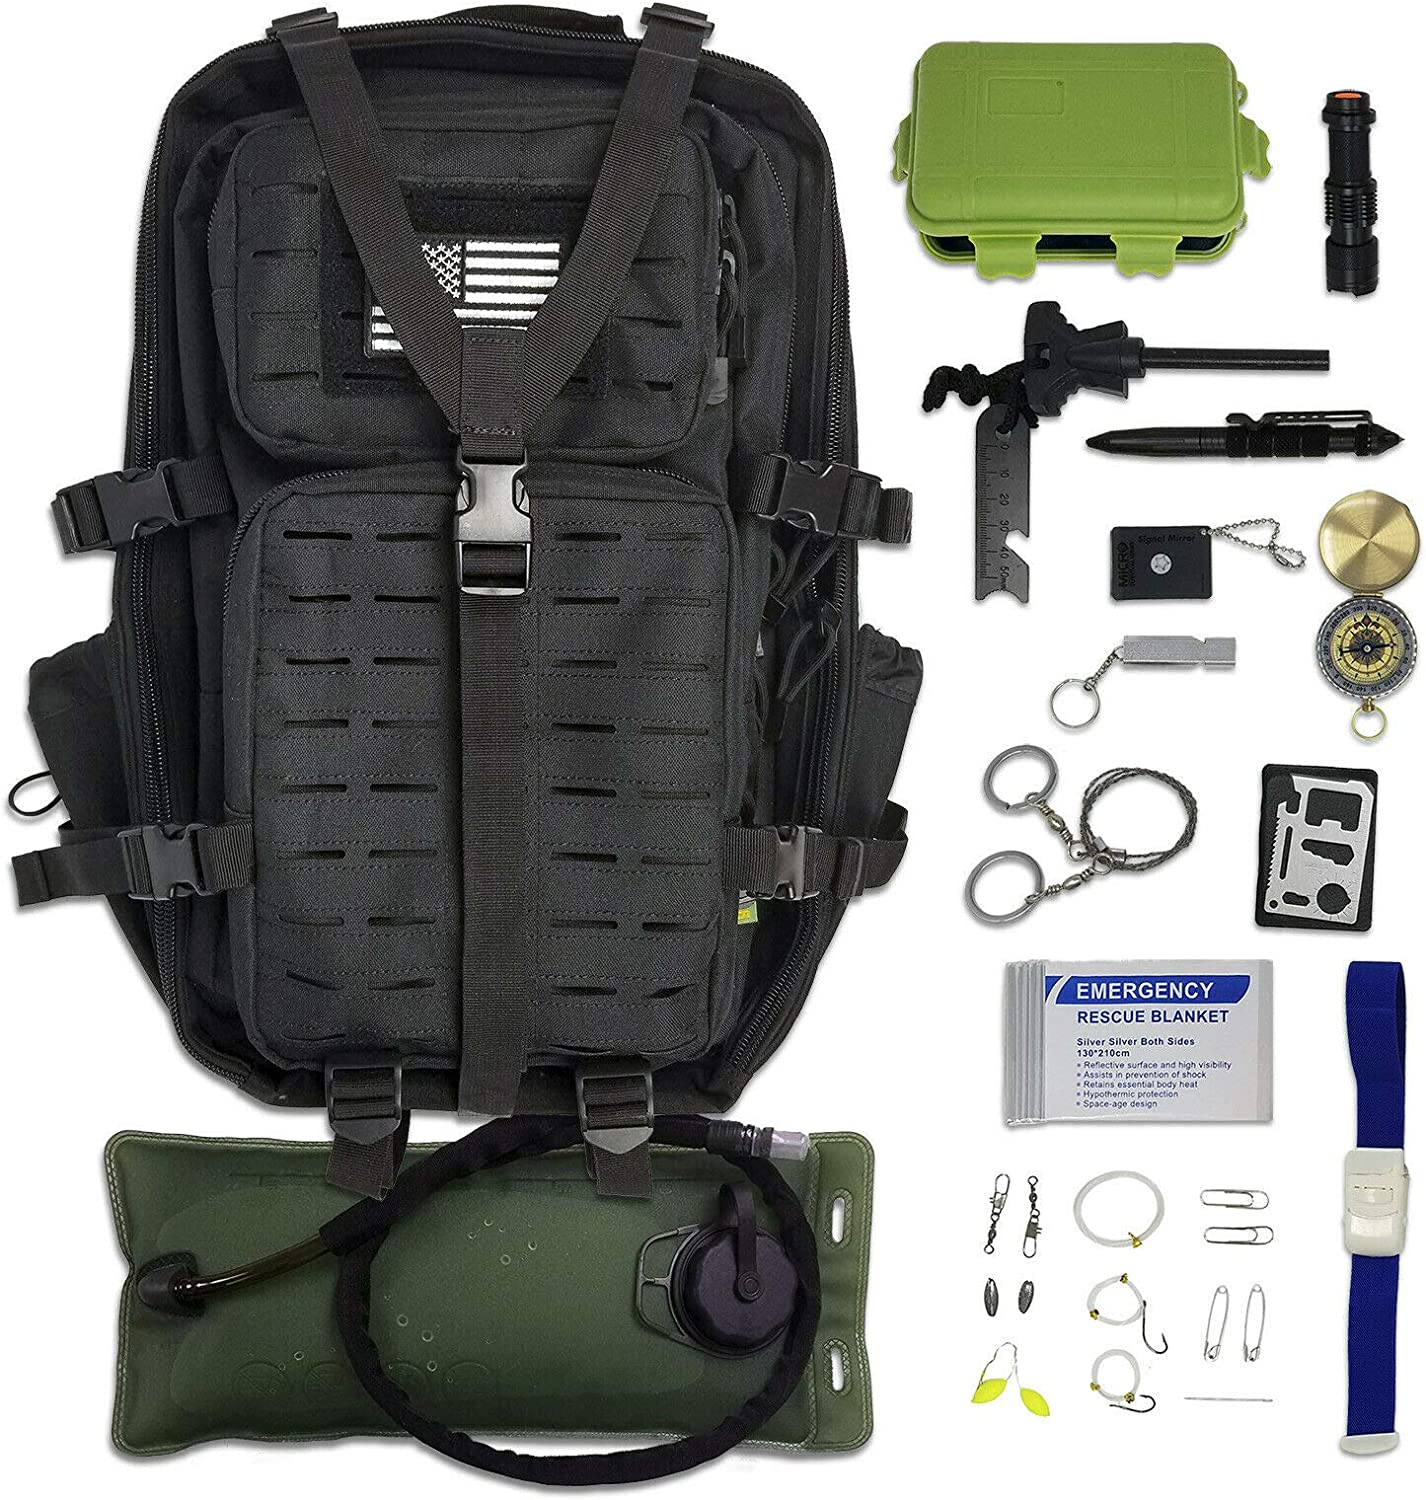 Amazon.com: WWX Survival Backpack Kit with Survival Gear & Emergency Tools  (29pc Set): Sports & Outdoors